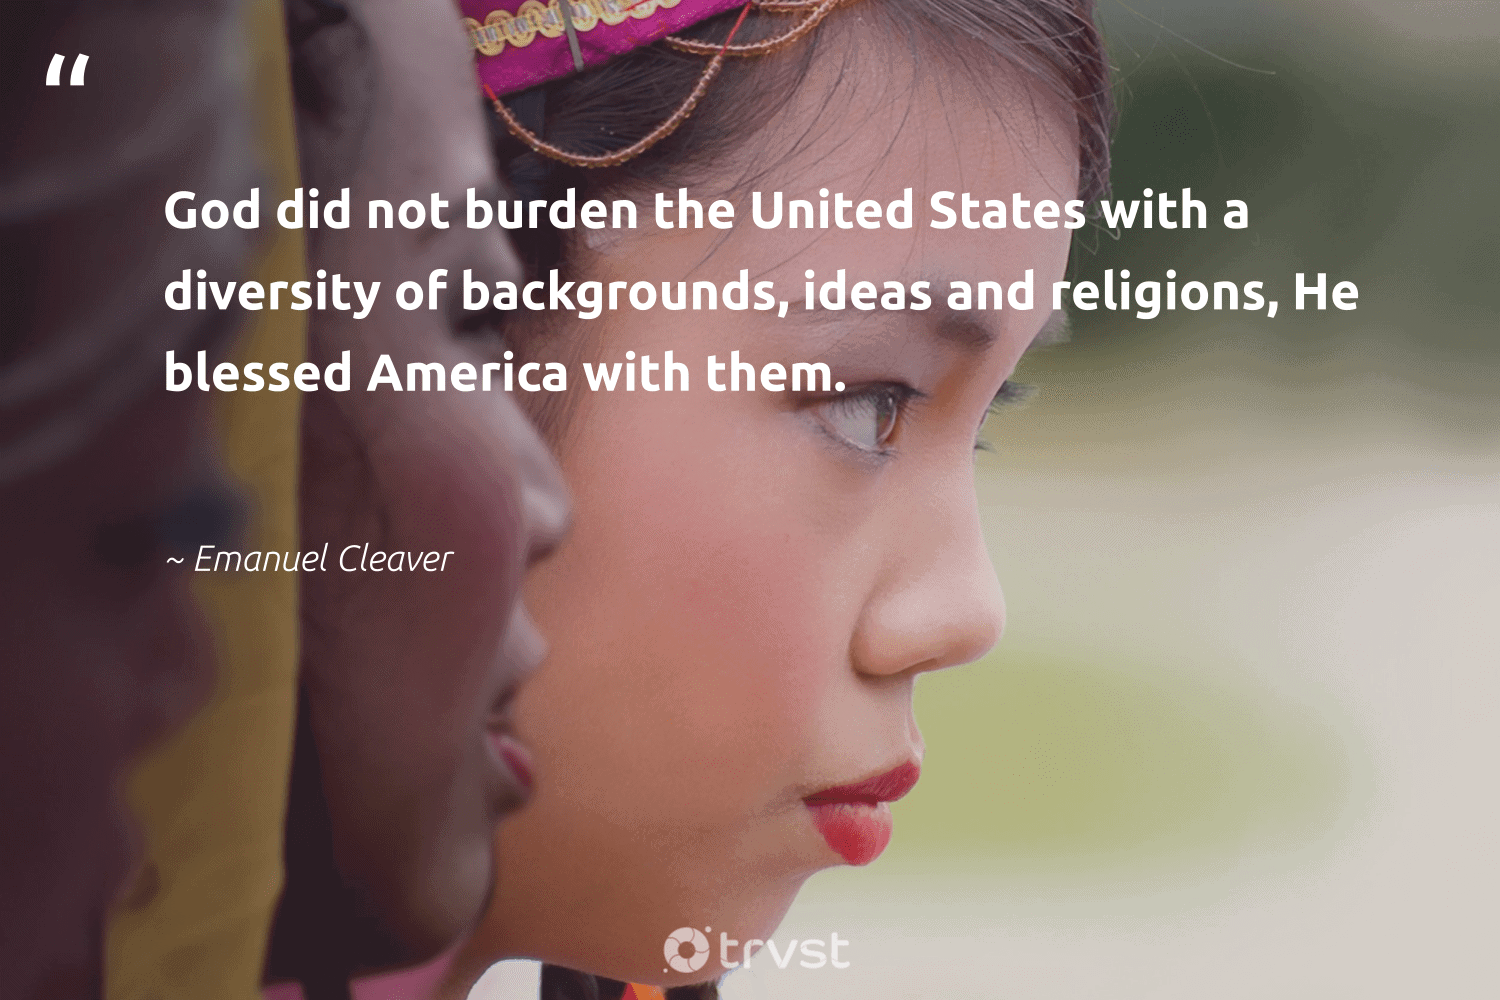 """""""God did not burden the United States with a diversity of backgrounds, ideas and religions, He blessed America with them.""""  - Emanuel Cleaver #trvst #quotes #diversity #inclusion #discrimination #socialgood #giveback #dotherightthing #representationmatters #bethechange #weareallone #dogood"""